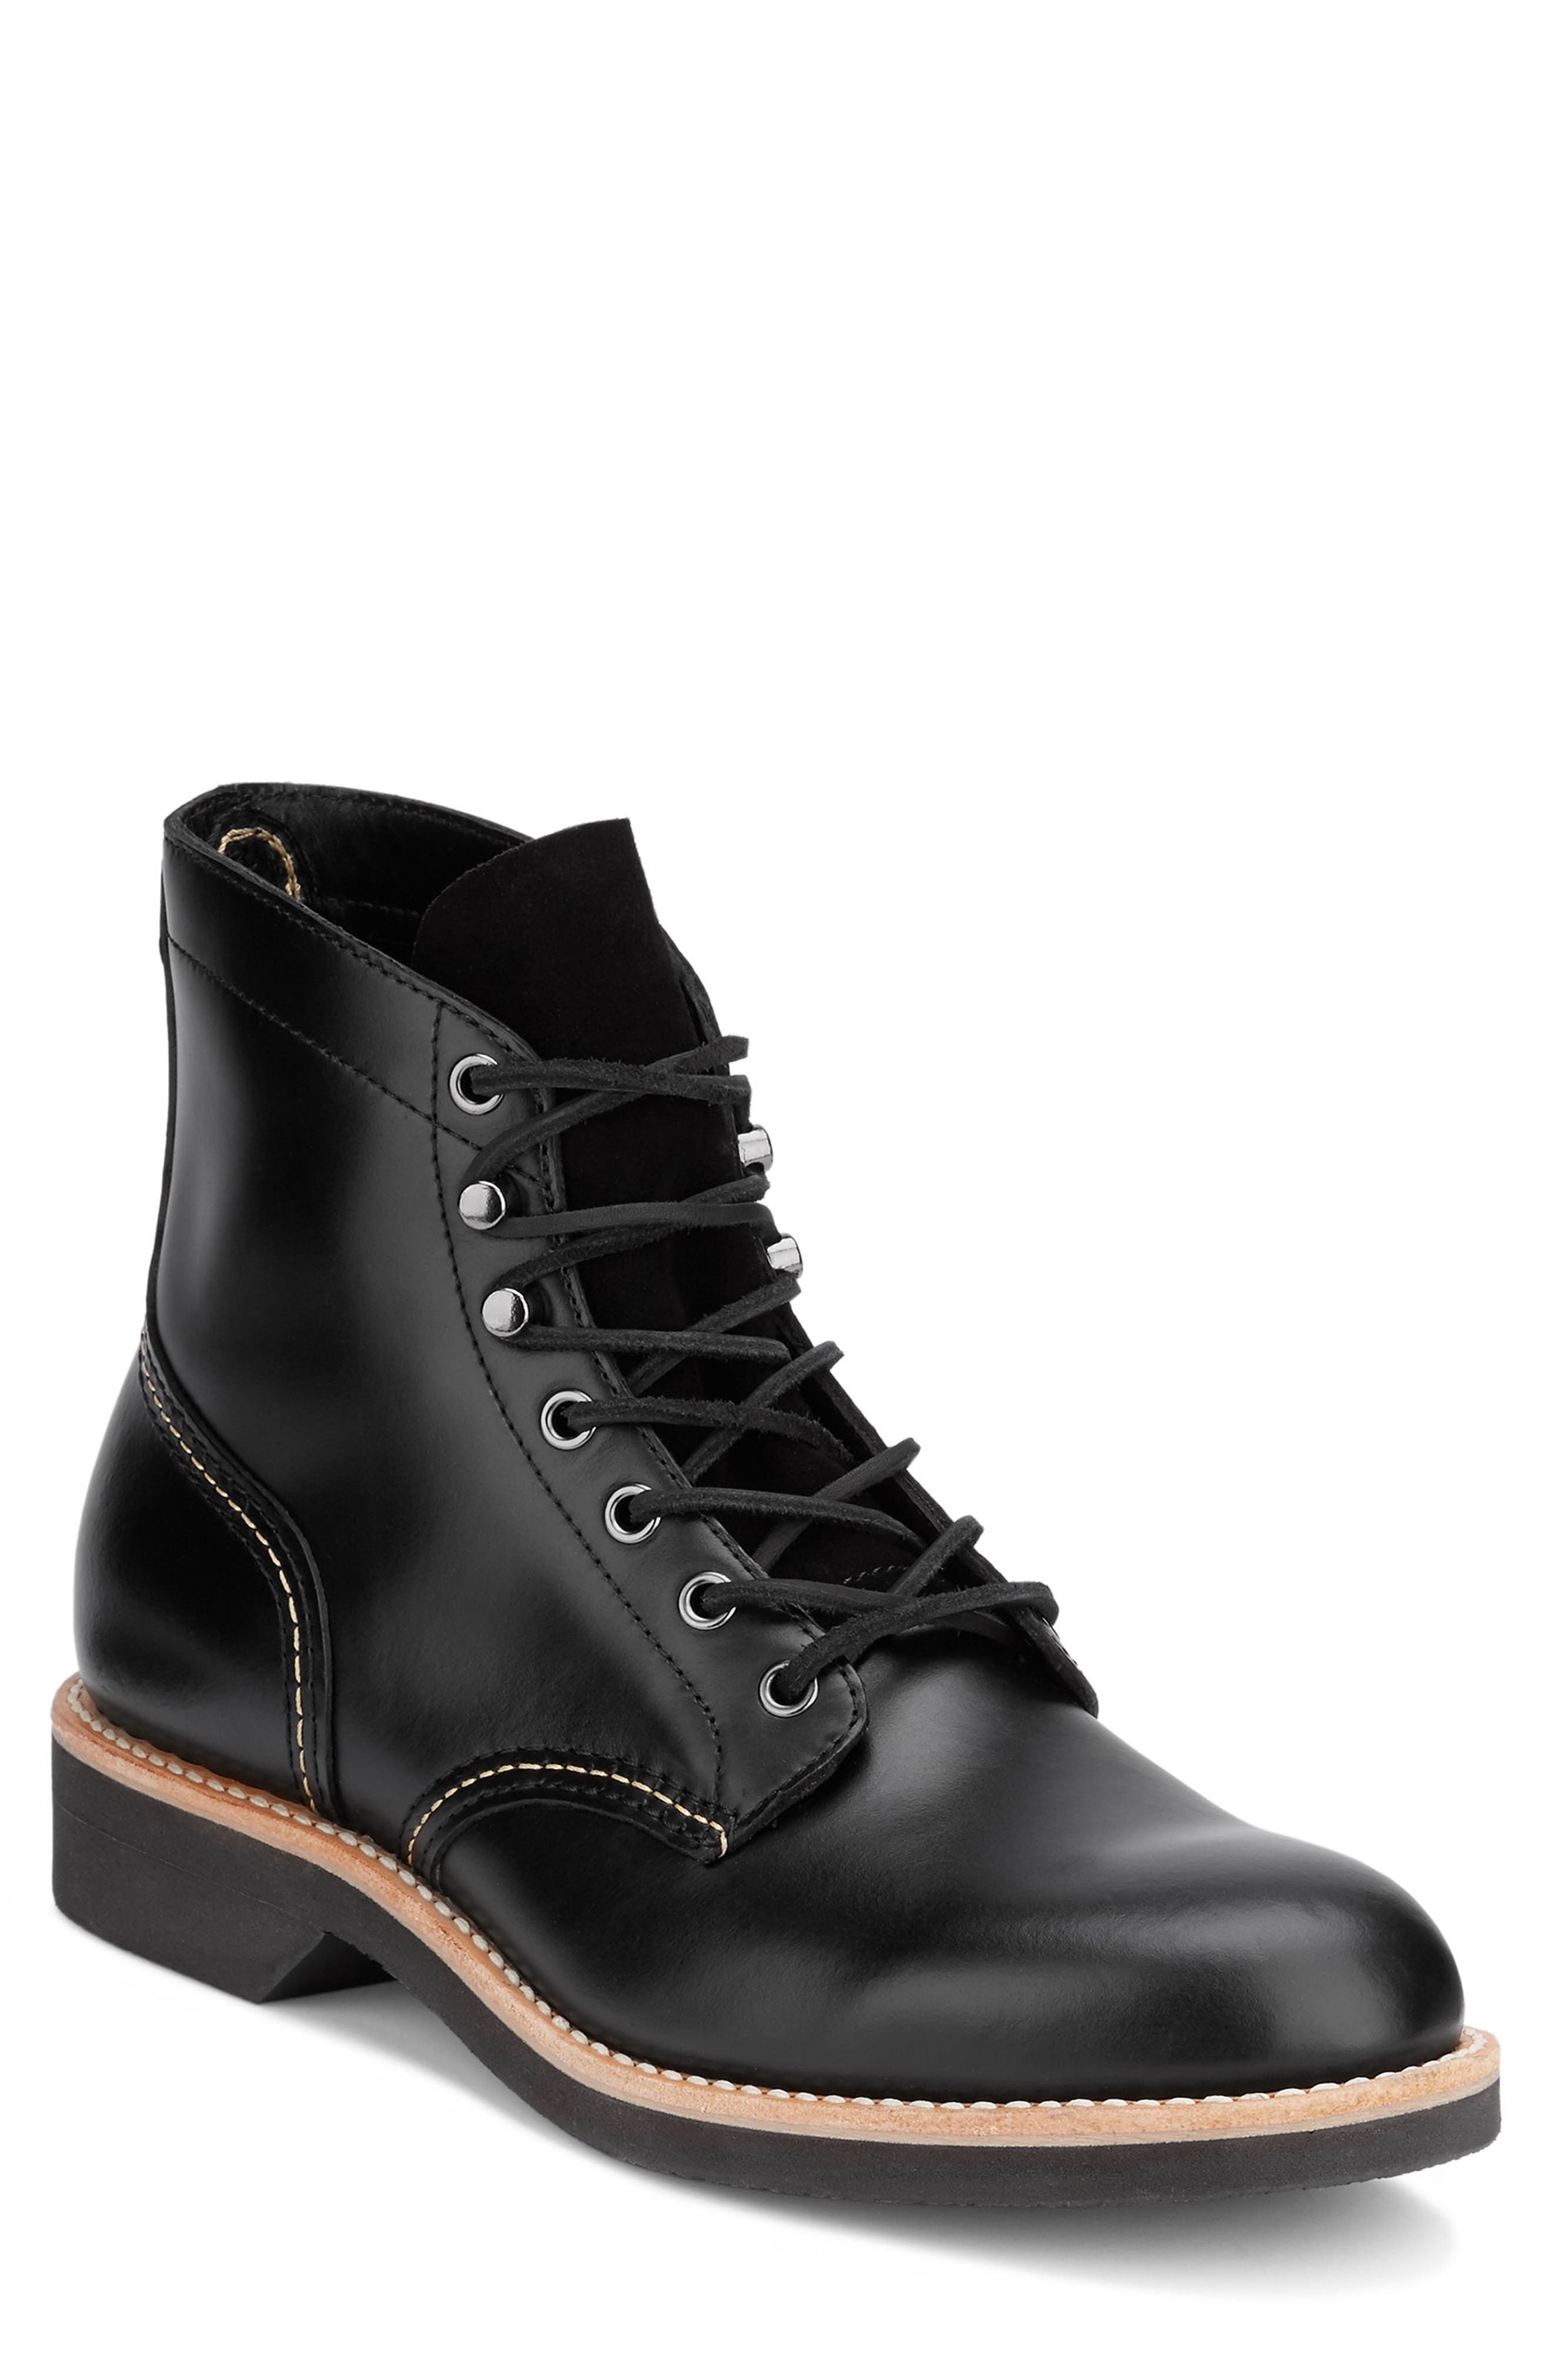 Reid Plain Toe Boot,                             Main thumbnail 1, color,